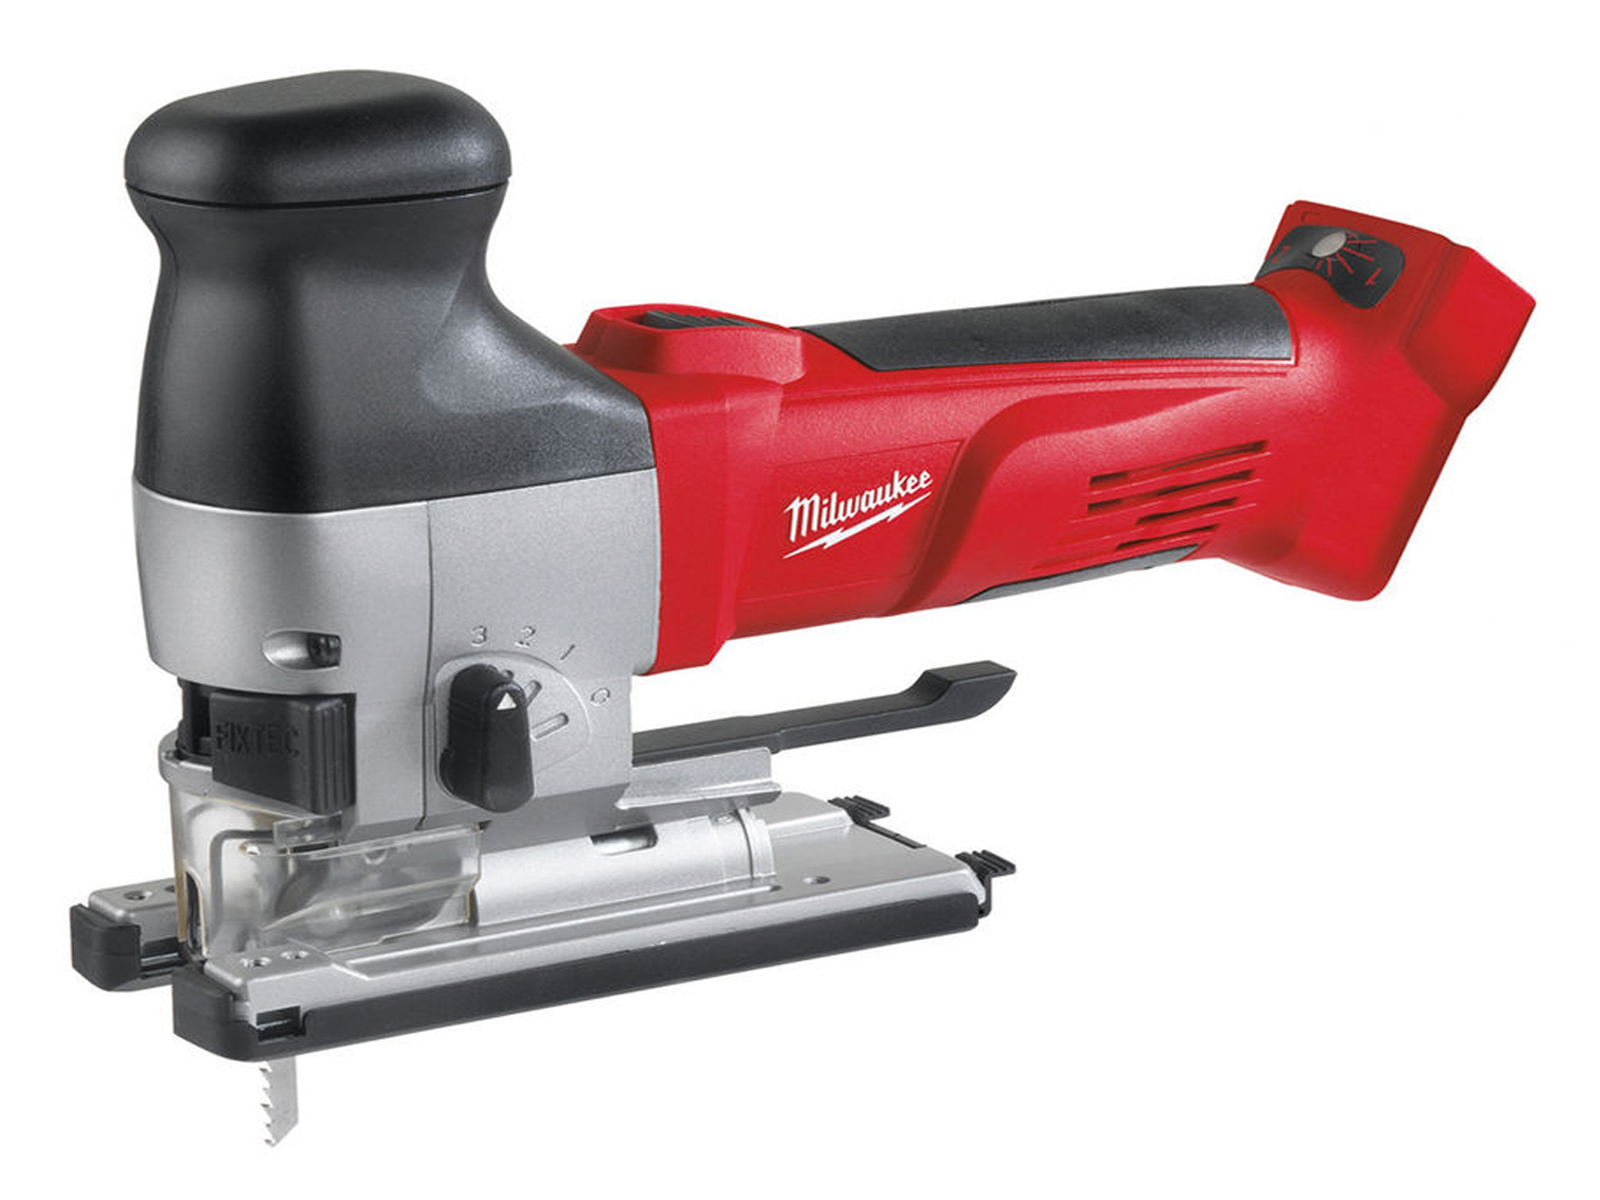 MILWAUKEE 18V HEAVY-DUTY BODY GRIP JIGSAW - HD18JSB - BODY ONLY